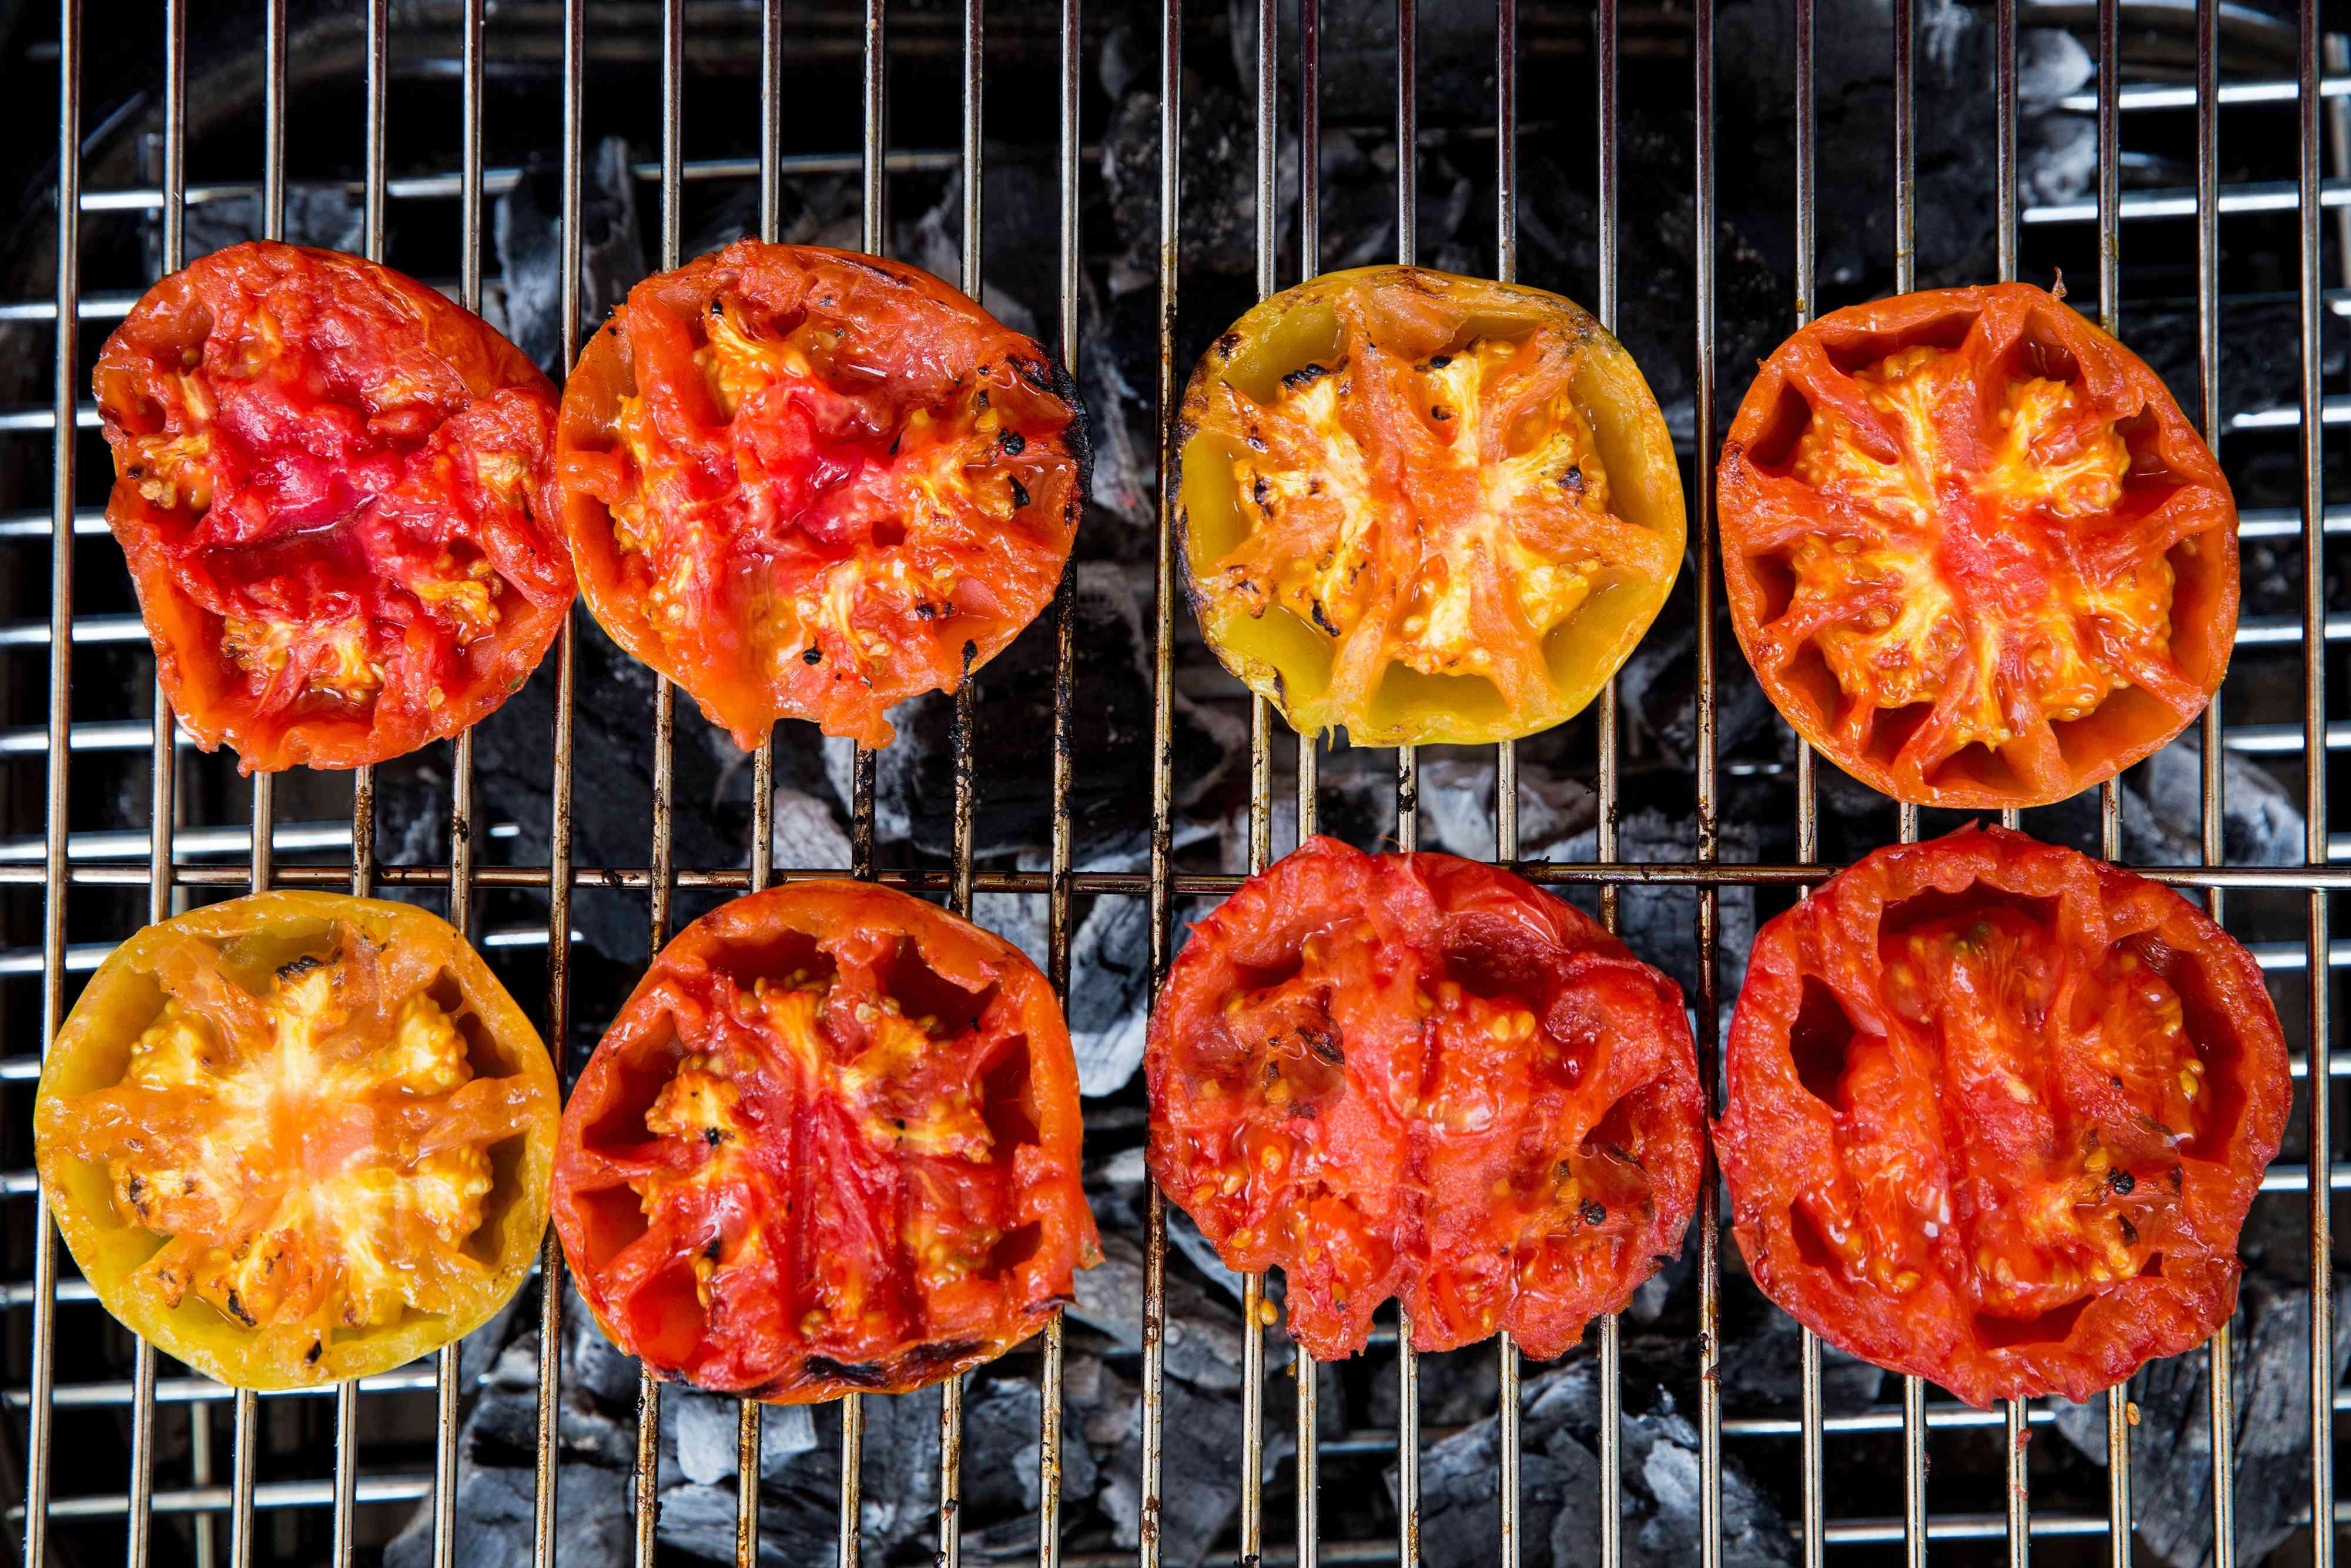 Tomatoes on the grill with grill marks